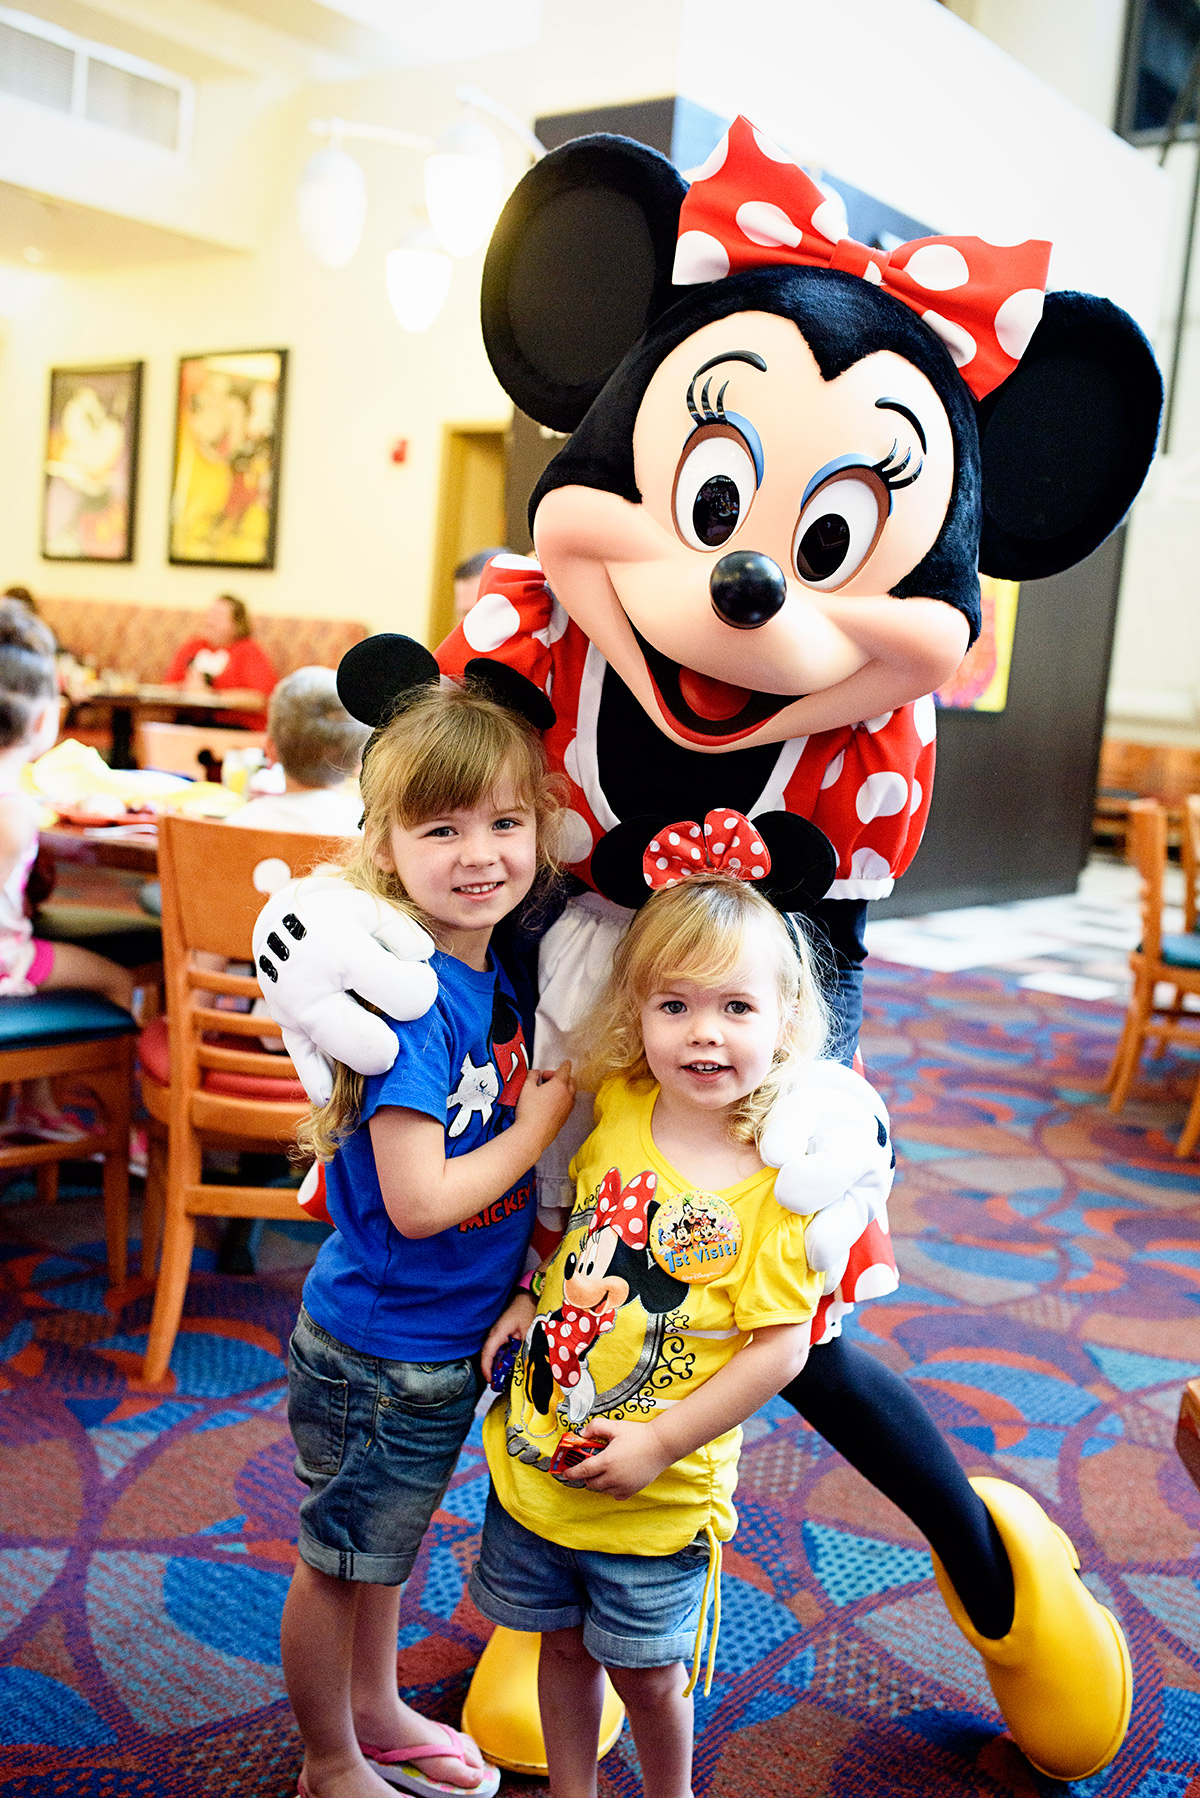 10 Best Disney World Restaurants you have to try